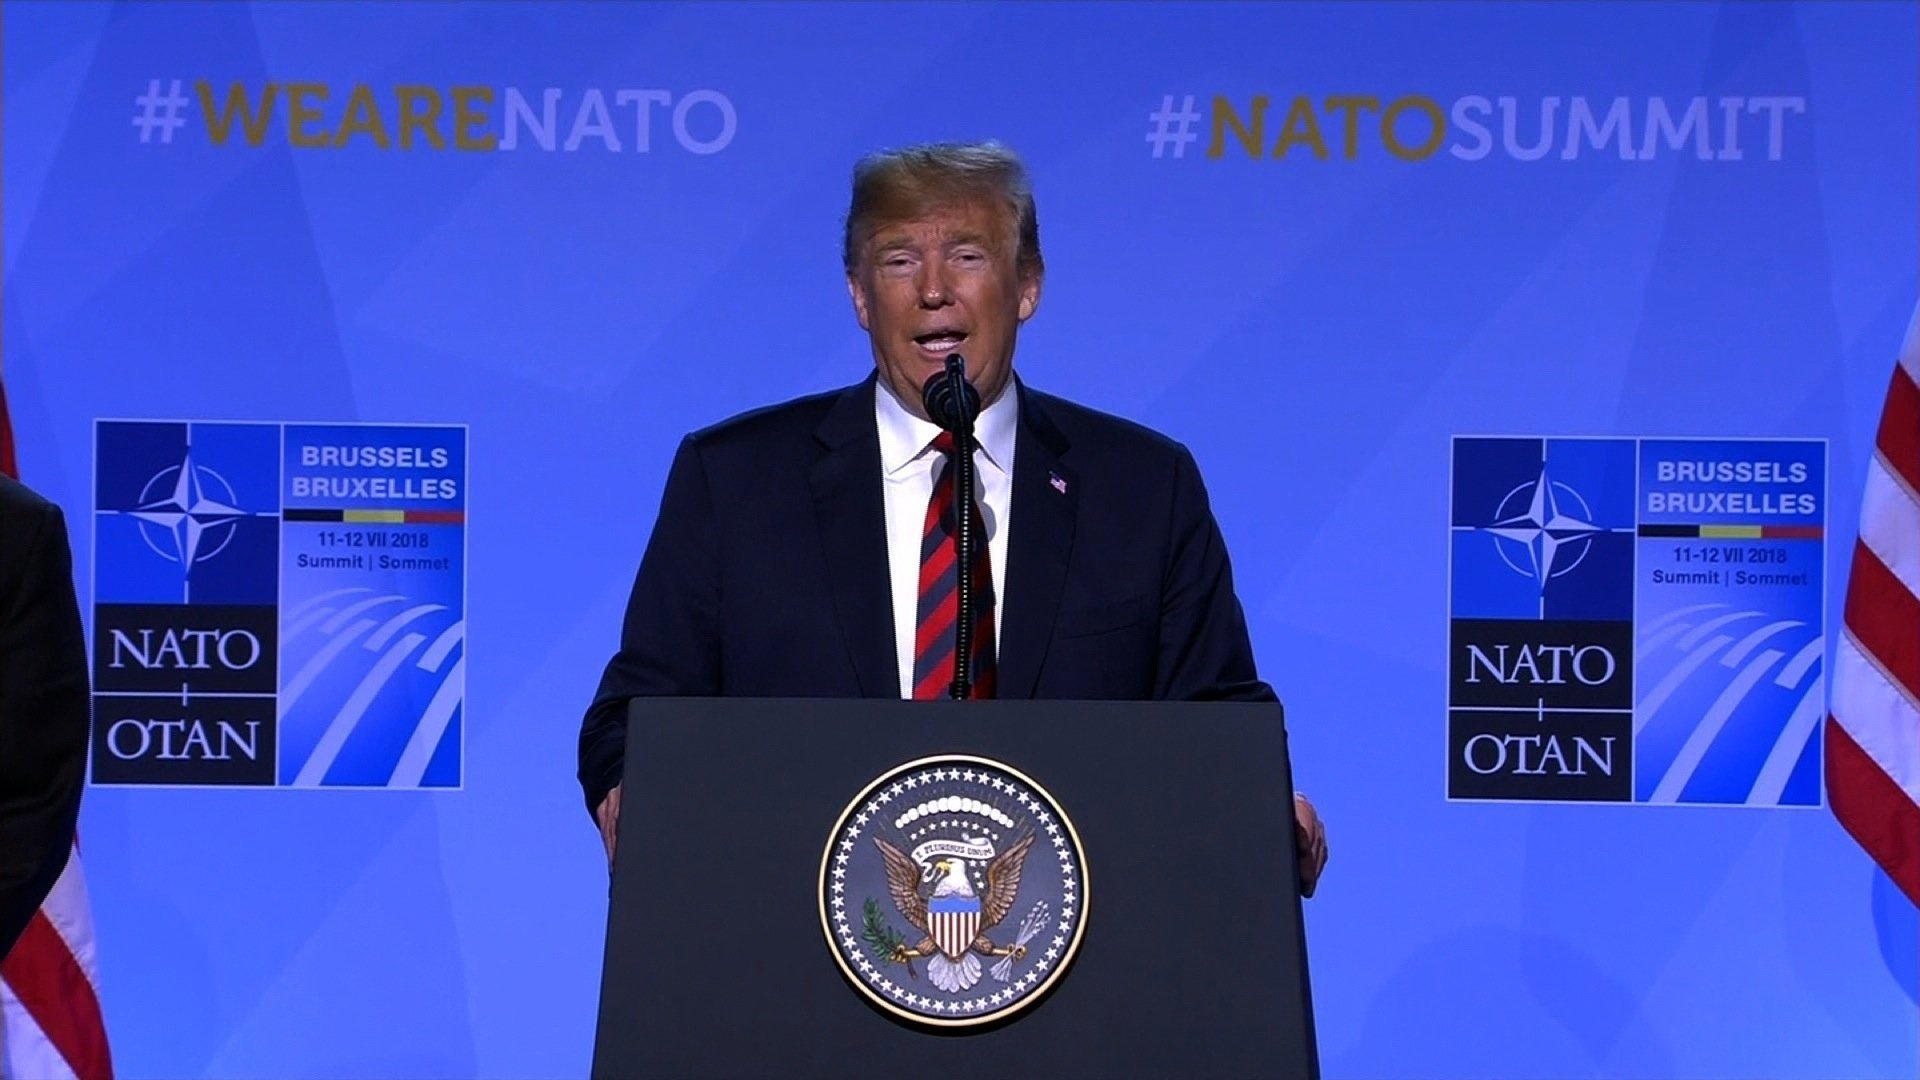 """Speaking at an impromptu press conference after a NATO summit in Brussels Trump said the British people shared his concerns on immigration, claiming """"that's why Brexit happened."""""""